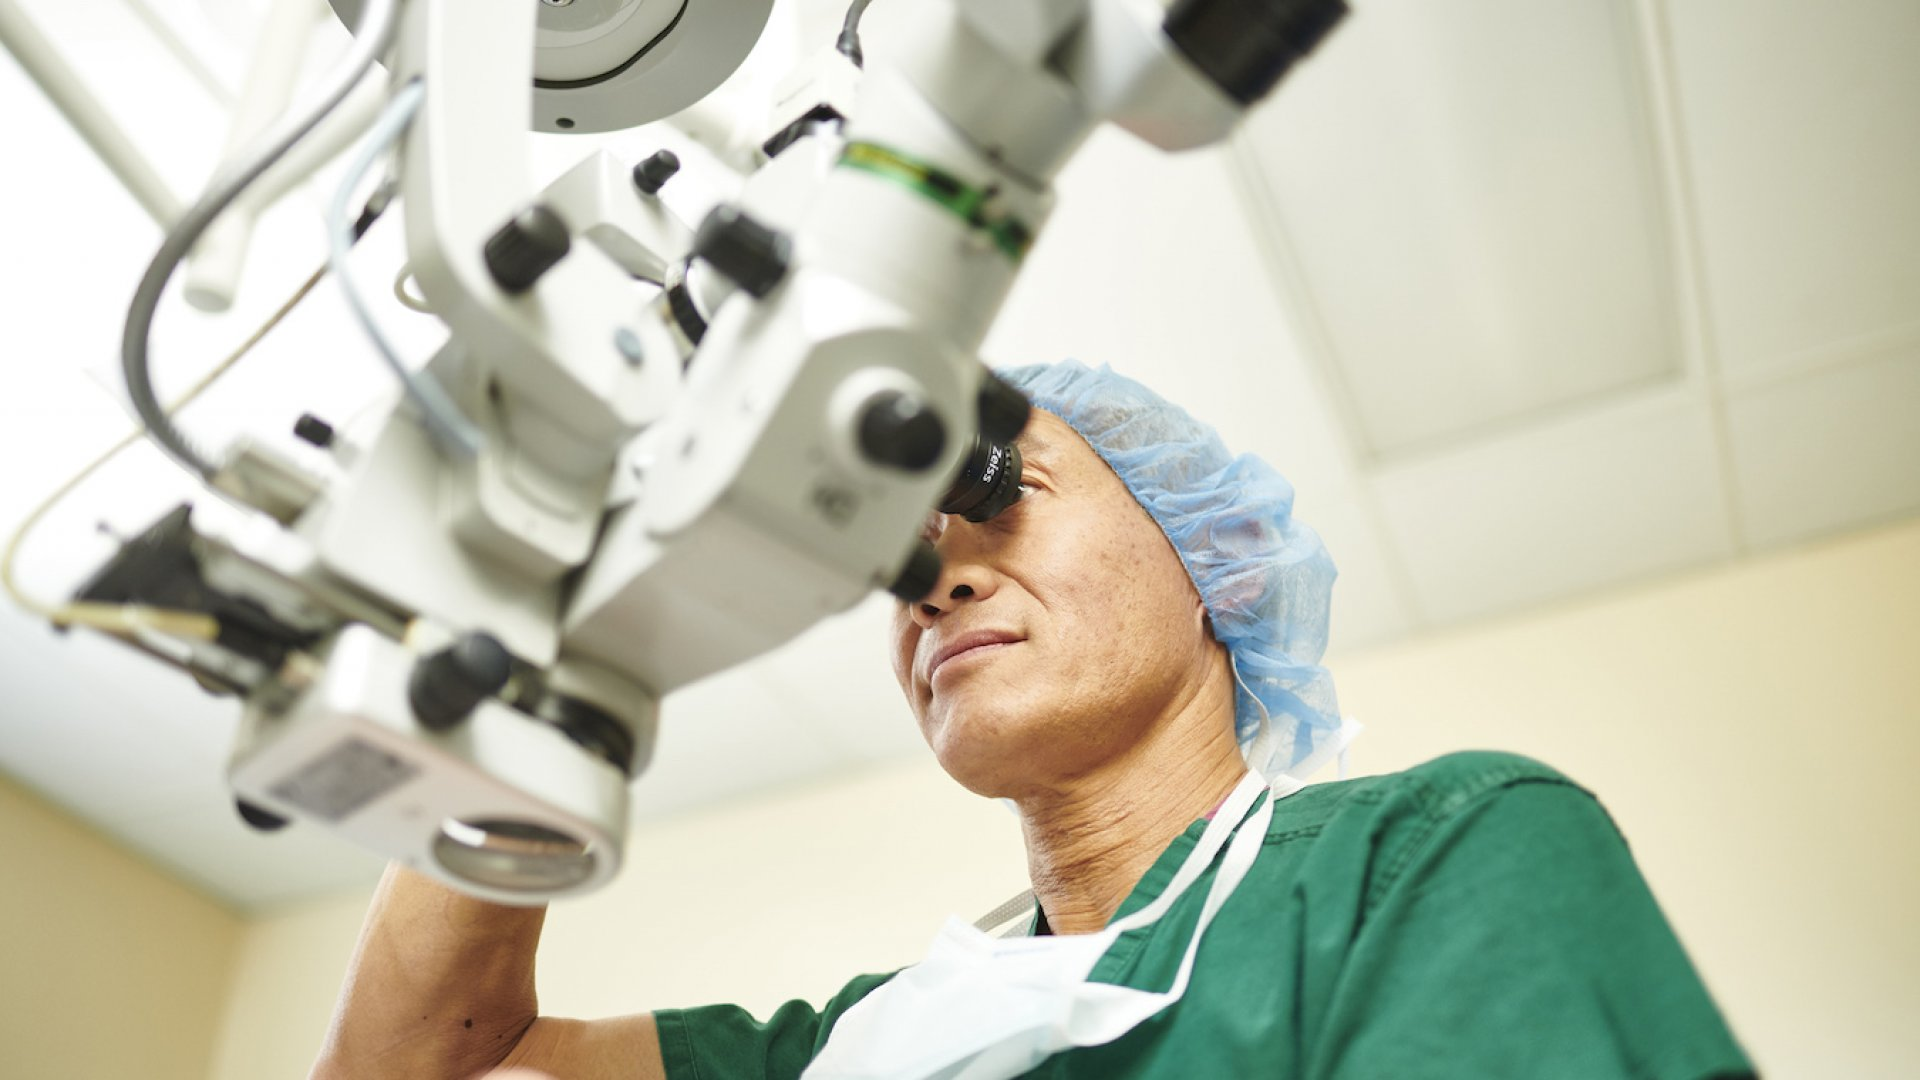 Dr. Eric Suan, founder of the Mid-Atlantic based Retina Care Center